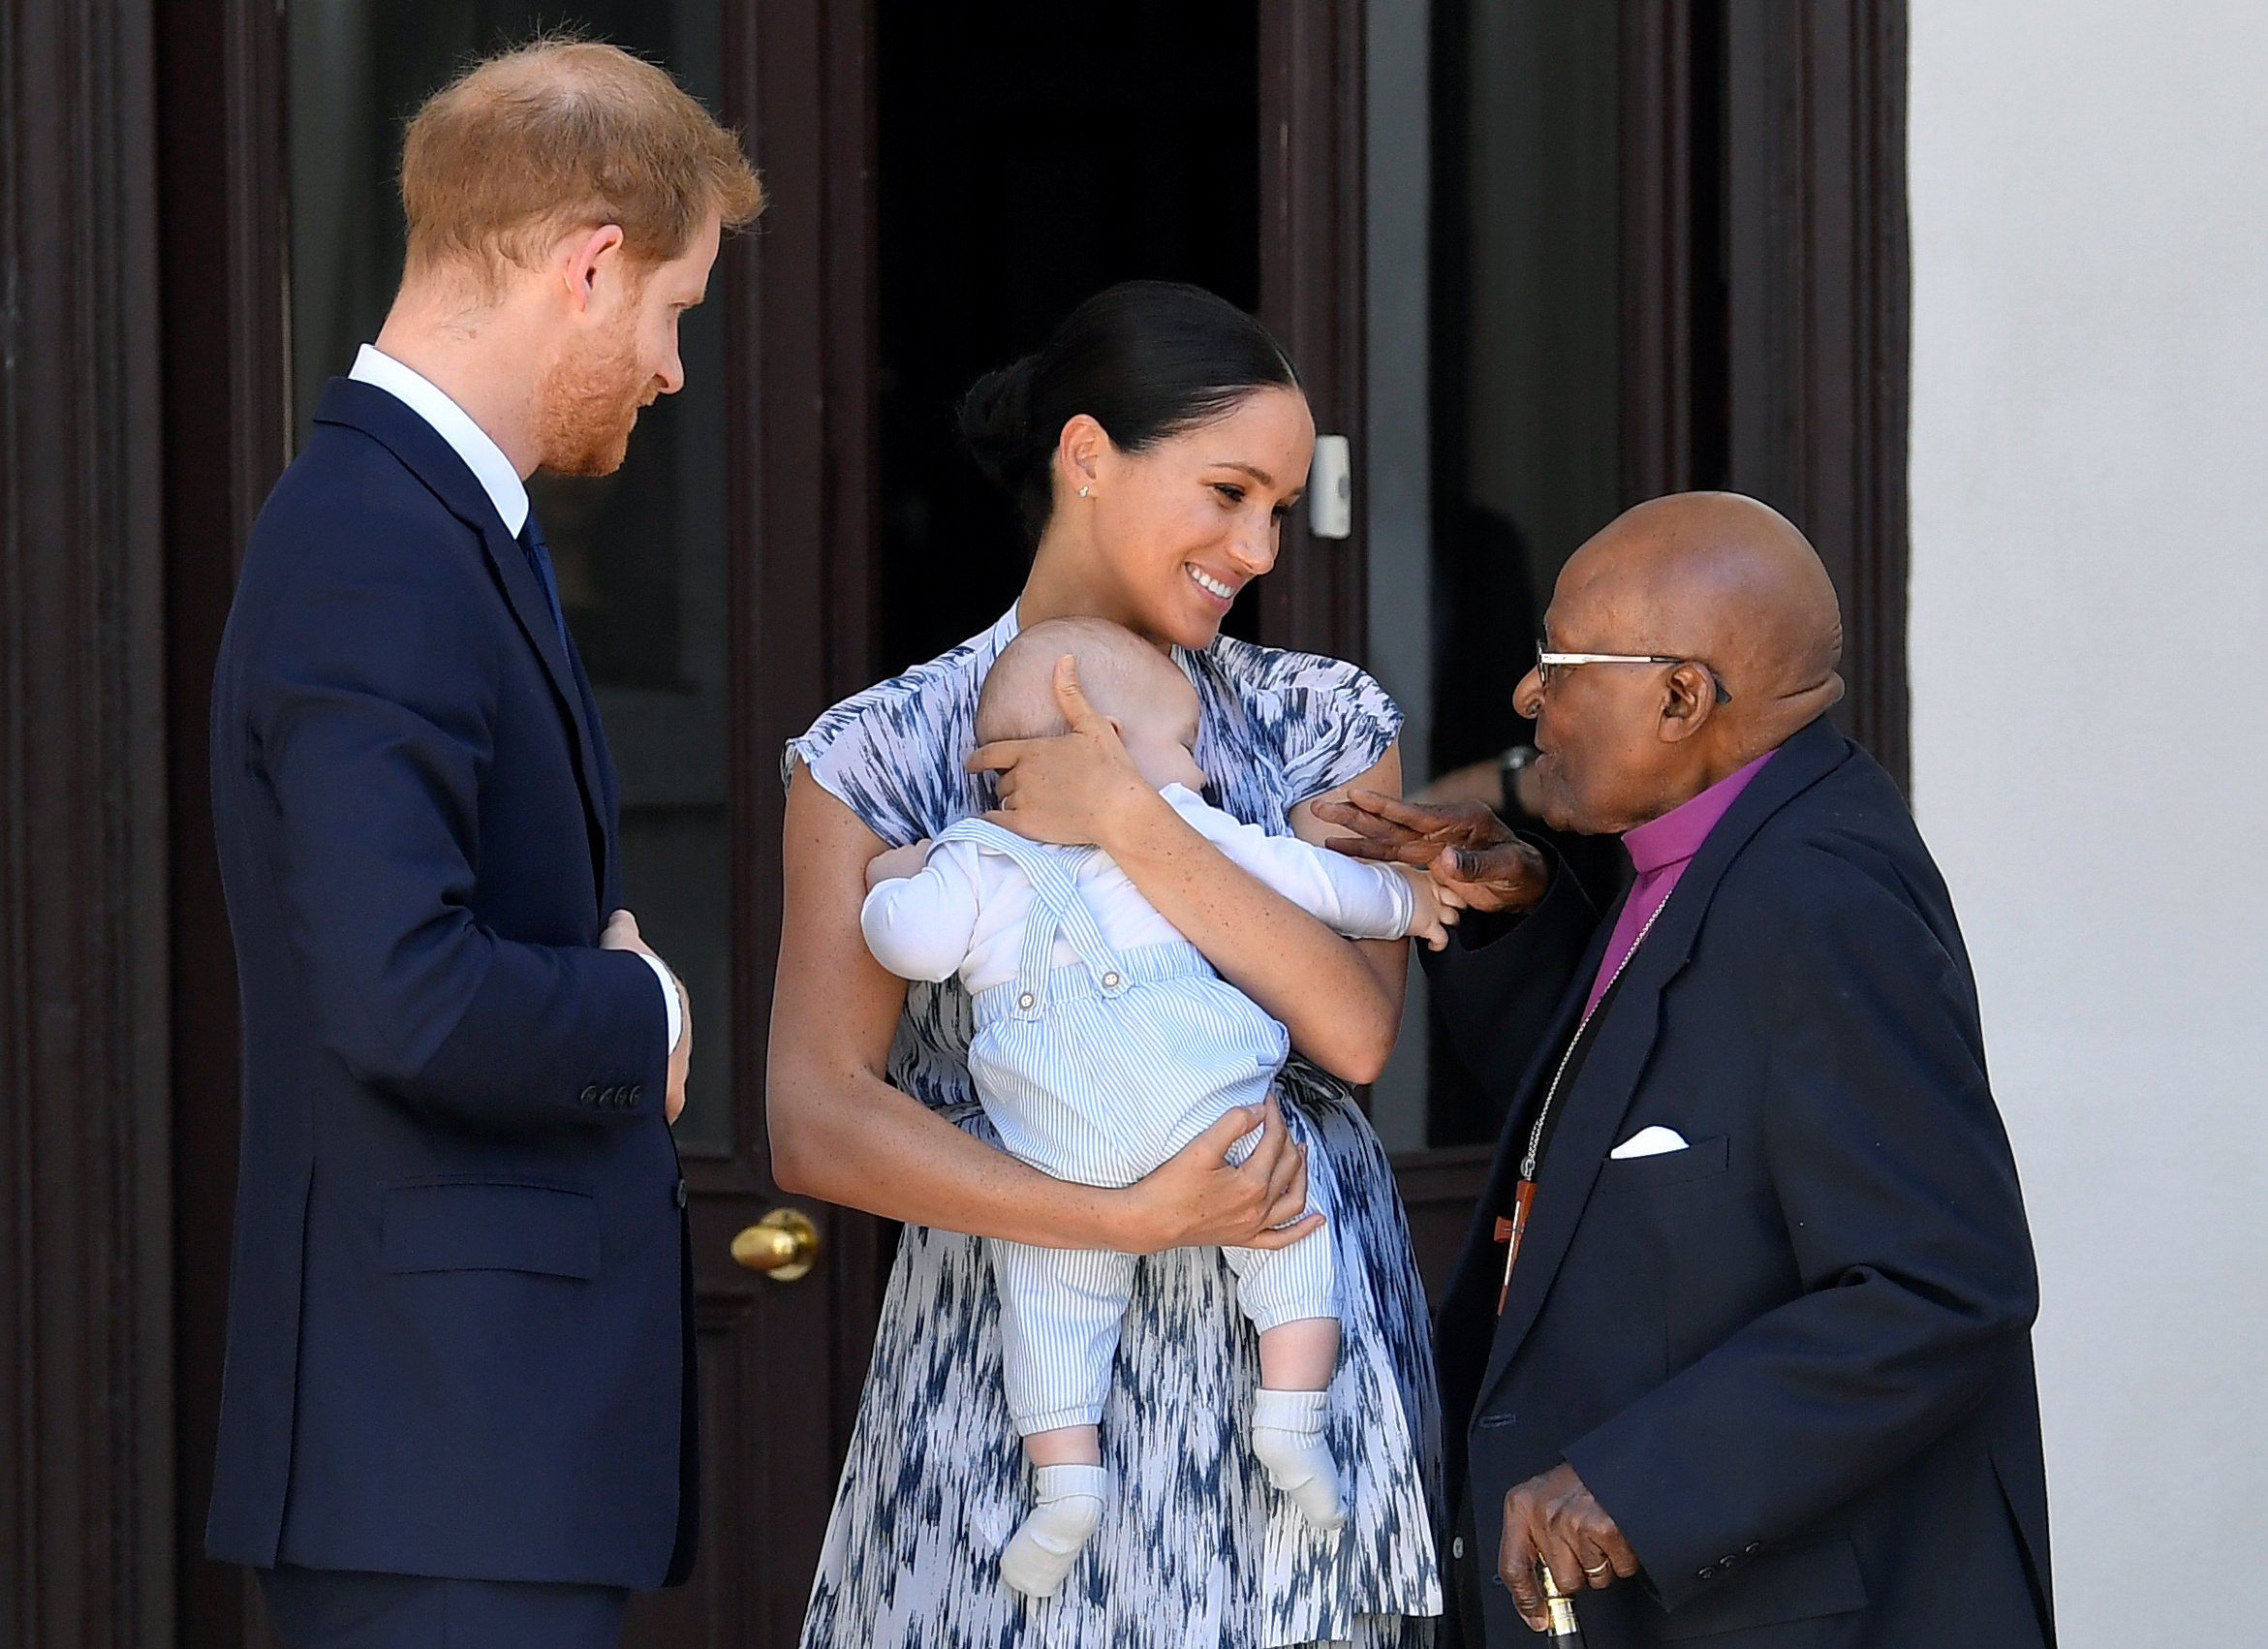 Prince Harry, Duke of Sussex, Meghan Markle, Duchess of Sussex and Archie Mountbatten-Windsor meet Archbishop Desmond Tutu on September 25, 2019 in Cape Town, South Africa. | Source: Getty Images